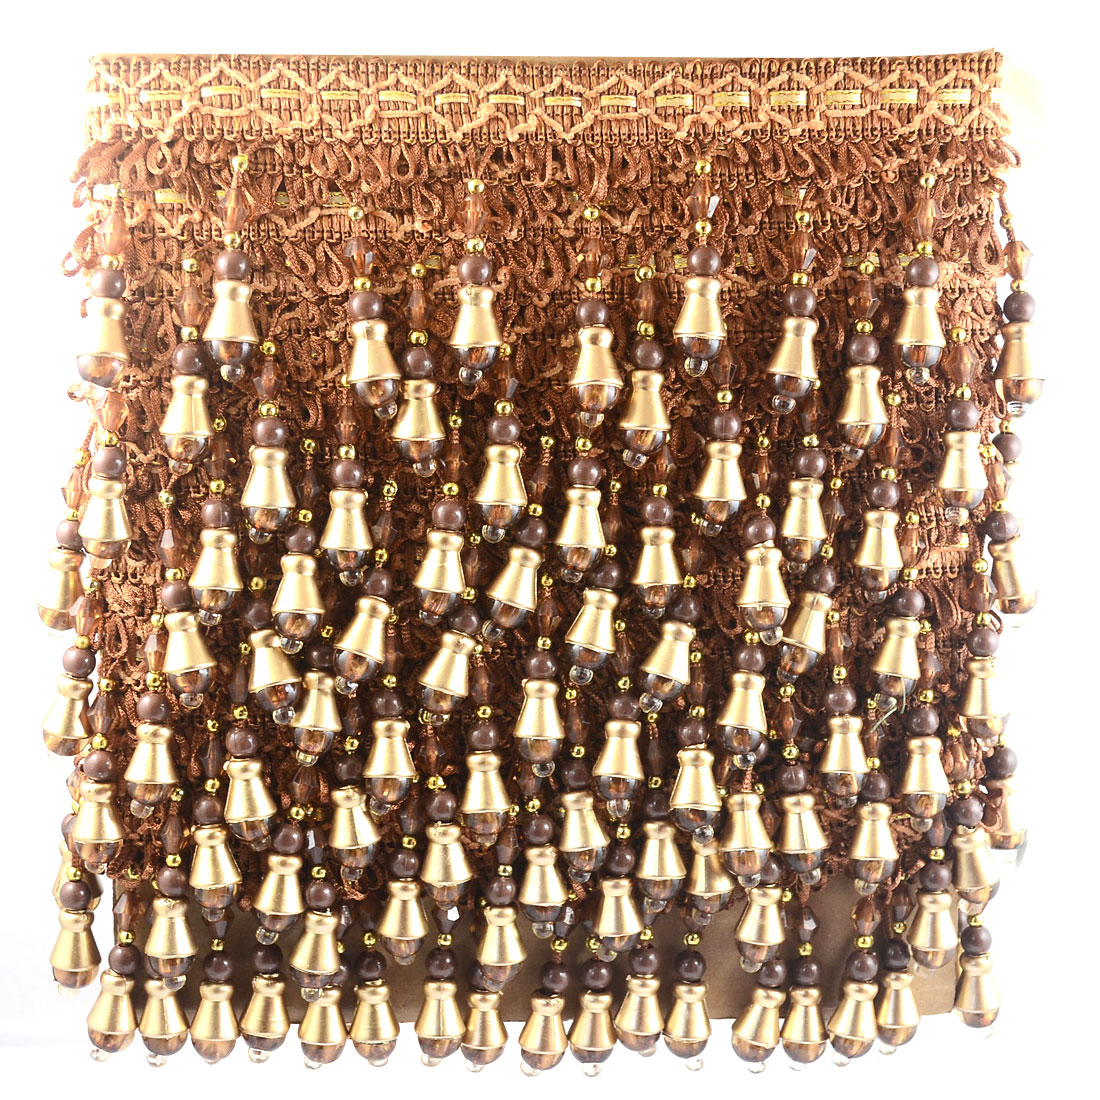 12M Long Beaded Decorative Curtain Lace Trim Fringe Upholstery Brown